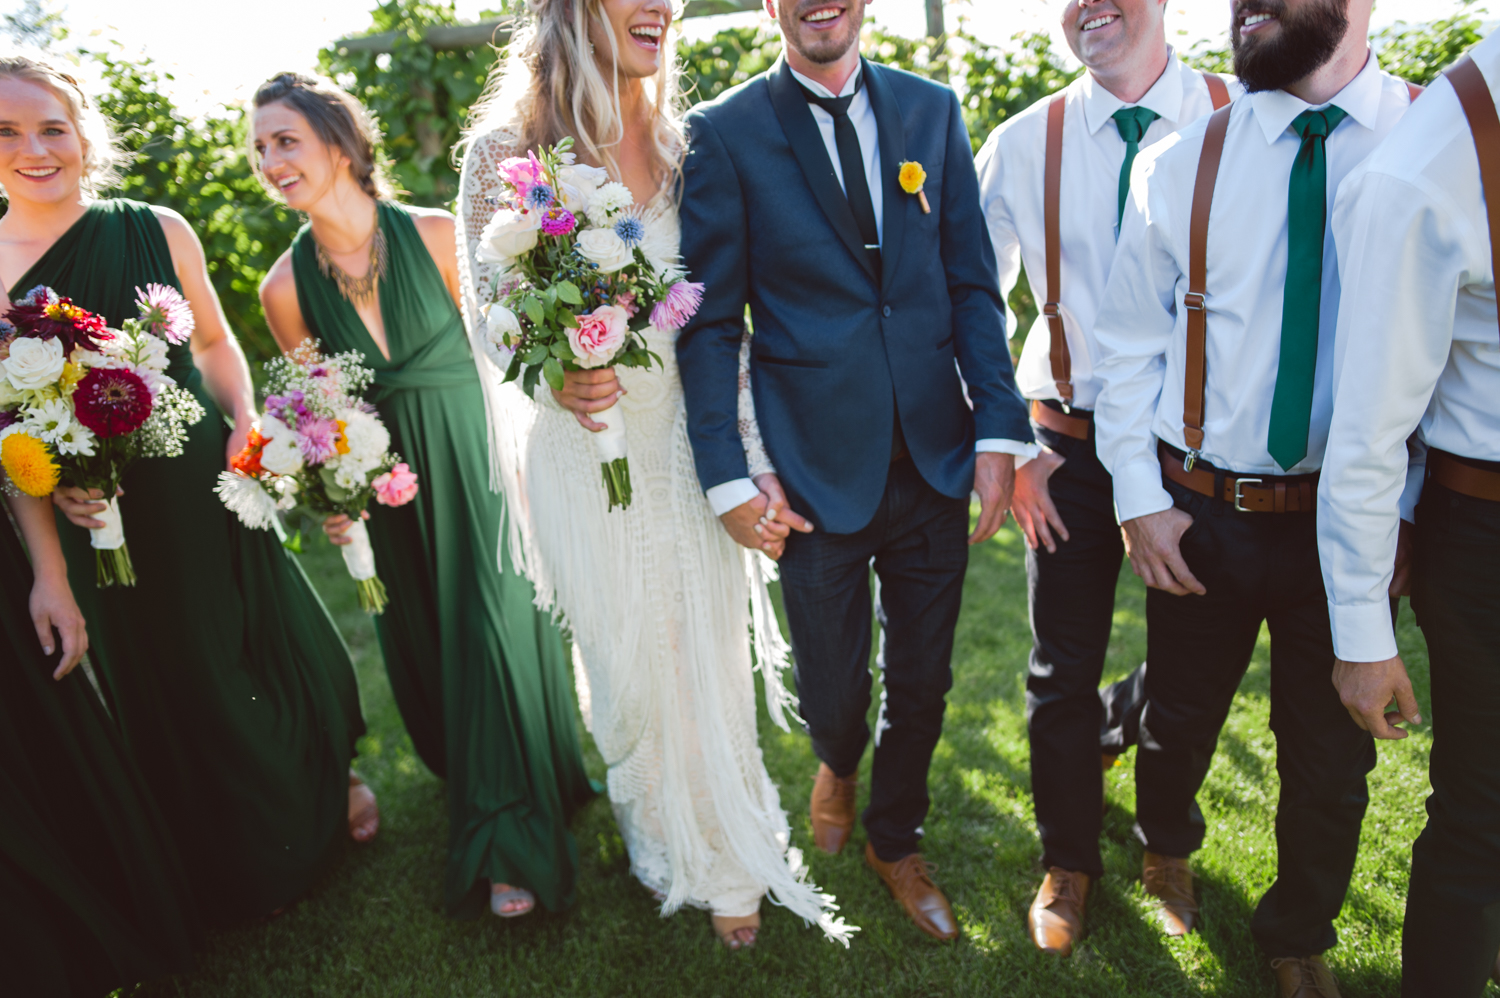 Kelowna Summer modern boho wedding-jessika hunter photo-19.JPG